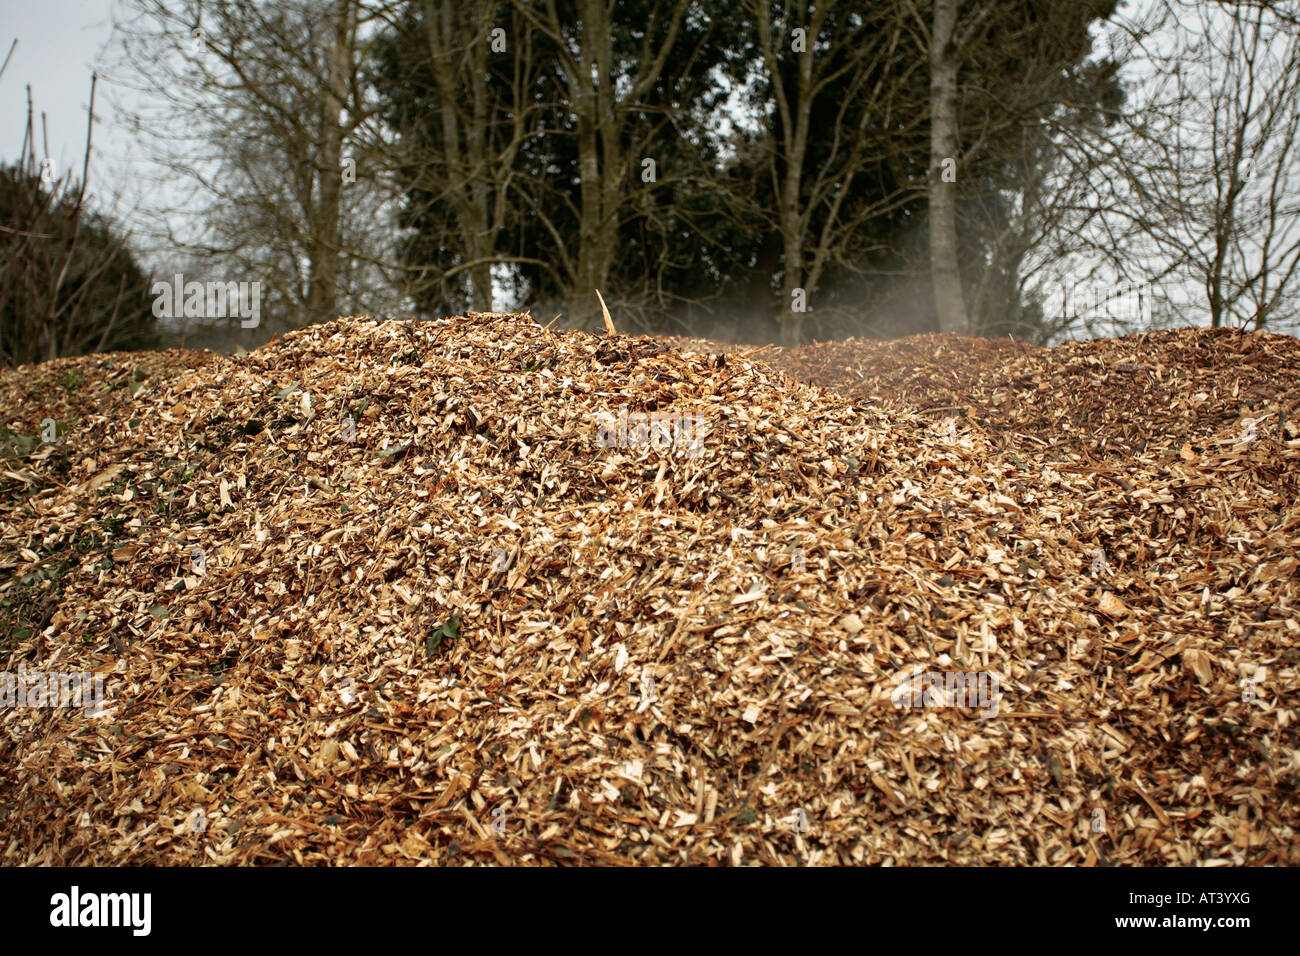 Smoking compost heap made from leaves and grass clippings - Stock Image